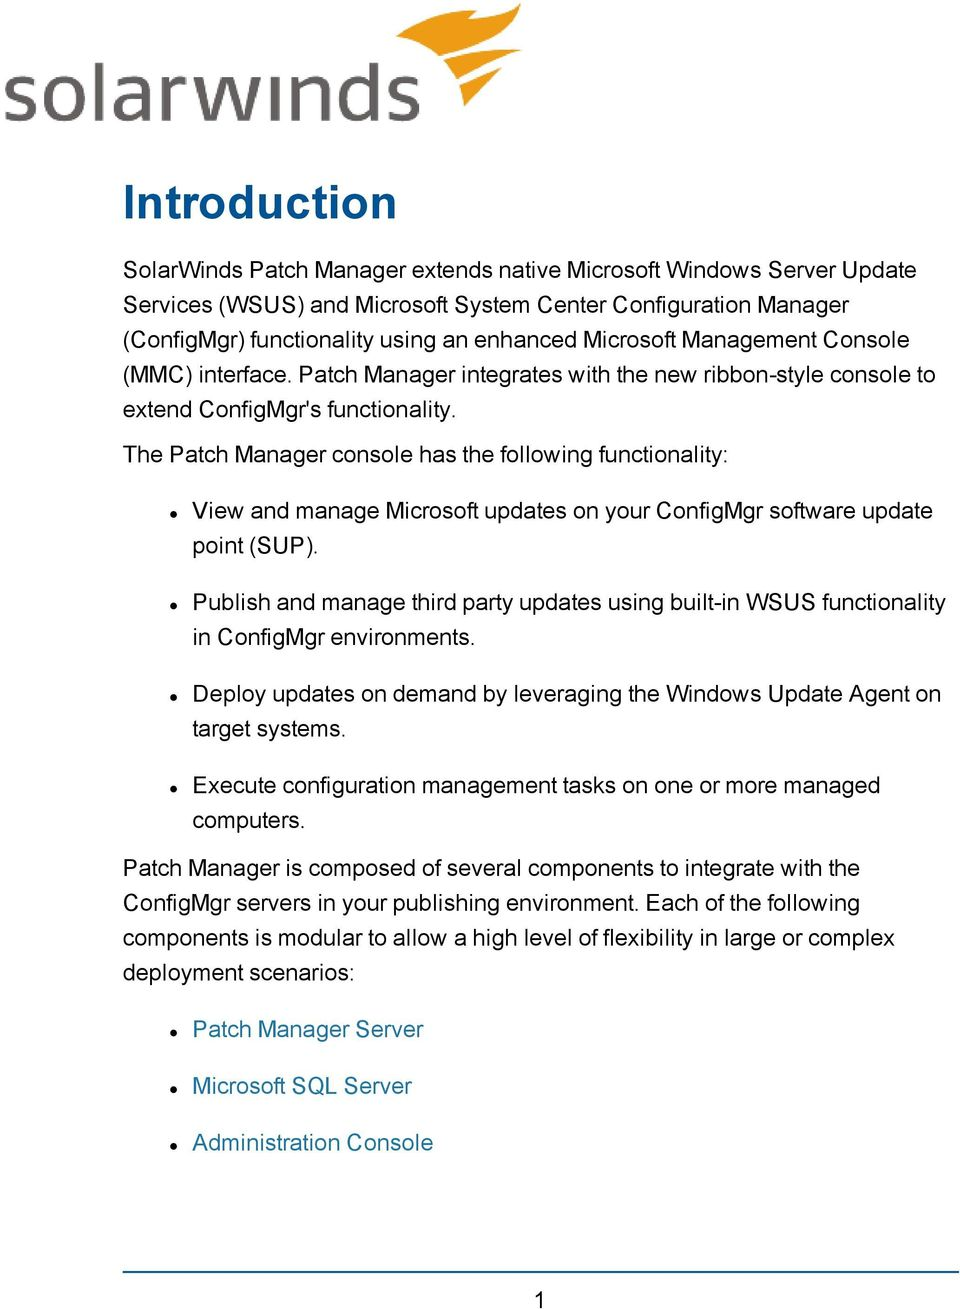 The Patch Manager console has the following functionality: View and manage Microsoft updates on your ConfigMgr software update point (SUP).